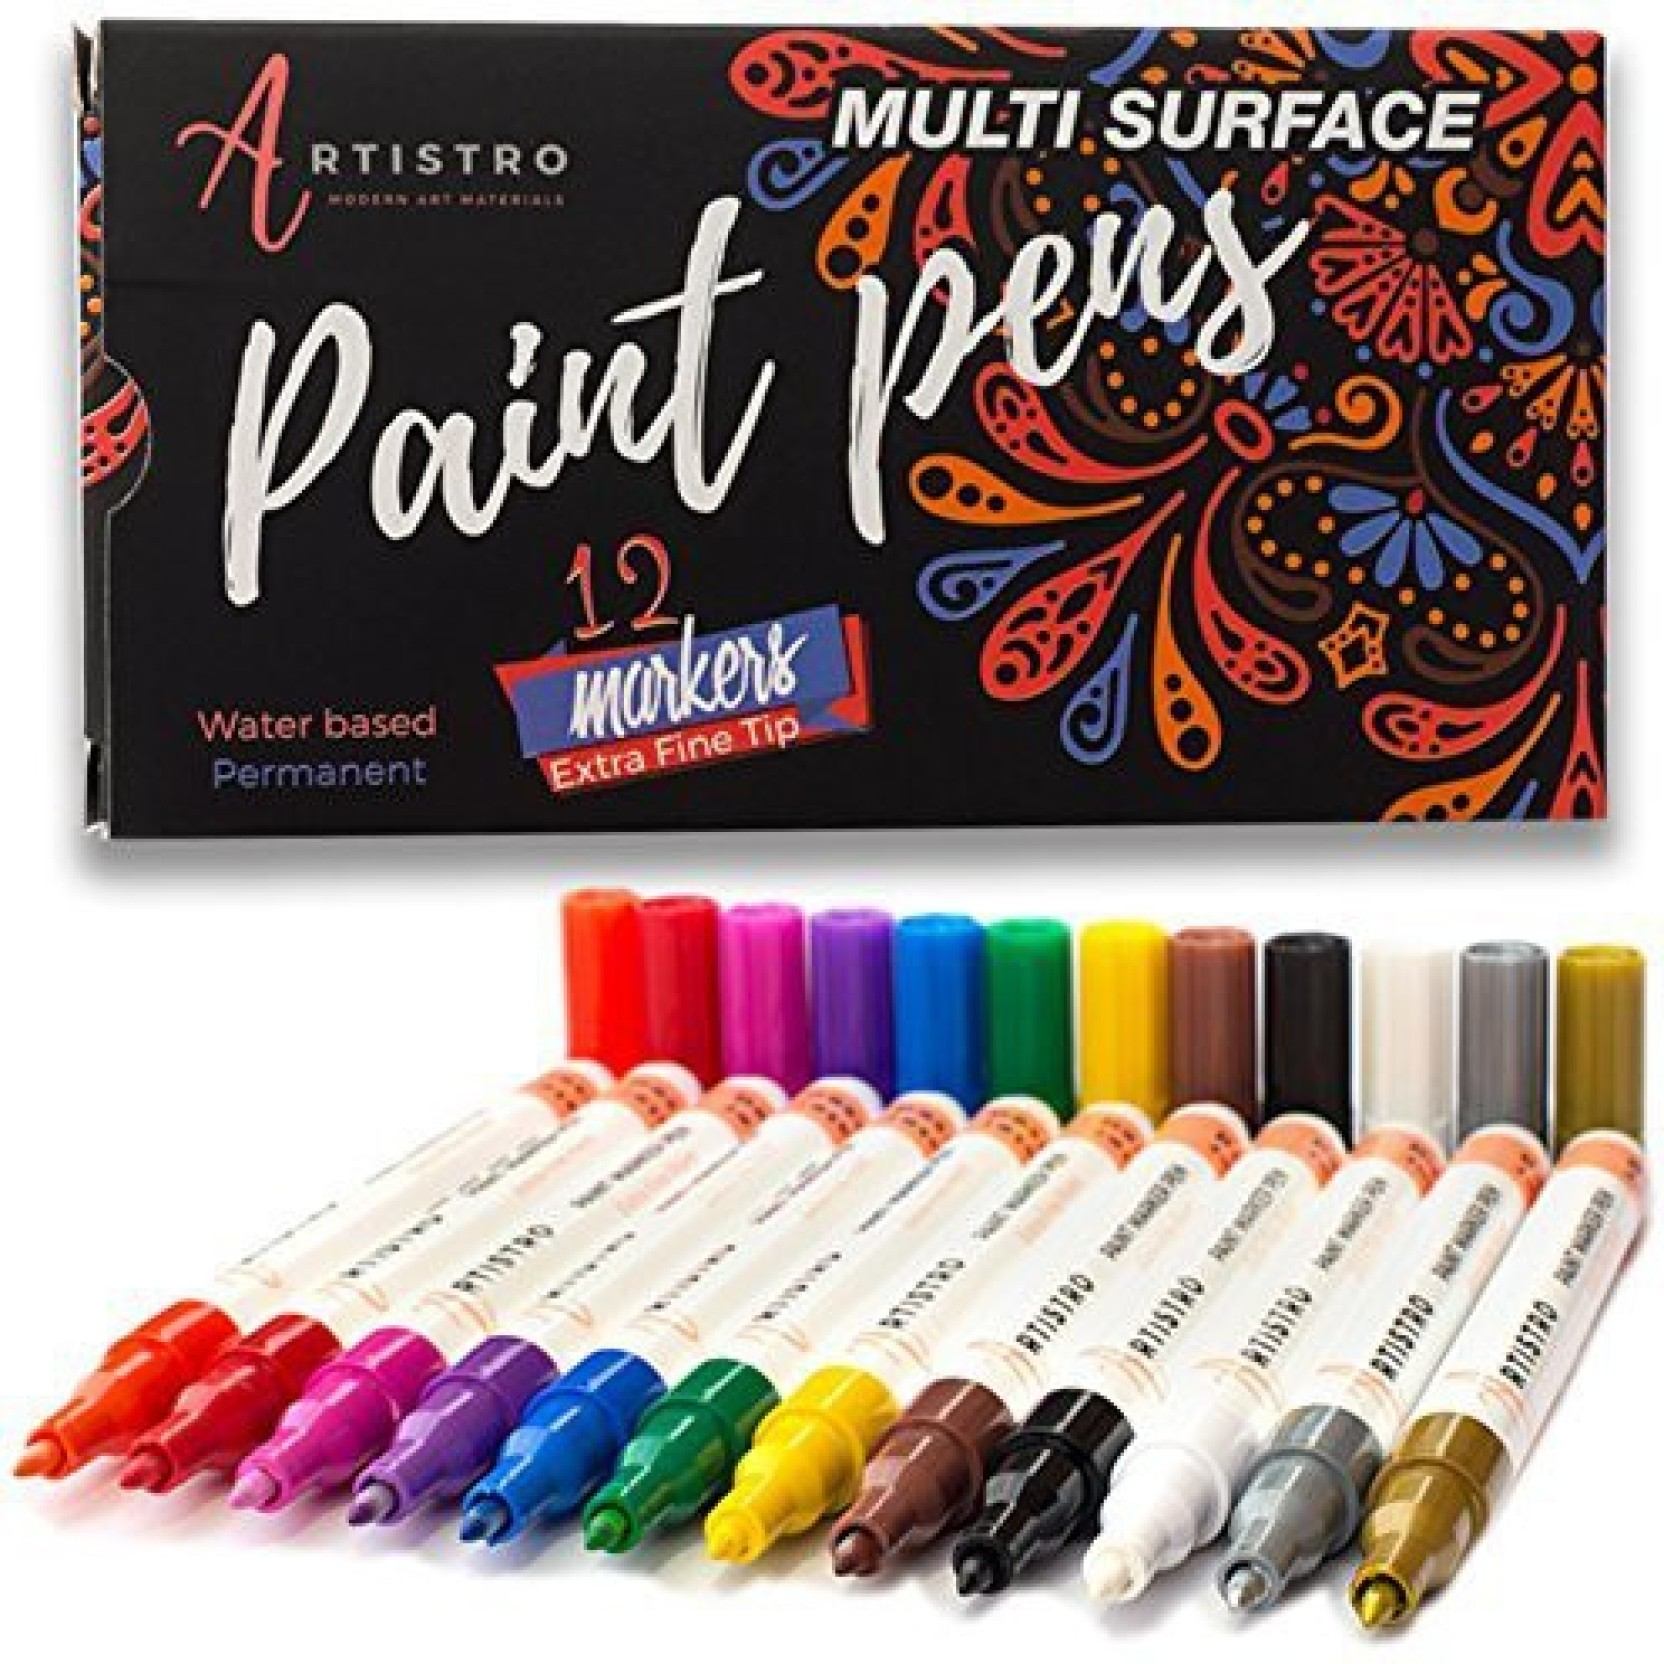 Artistro Paint Pens For Rock Painting Stone Ceramic Glass